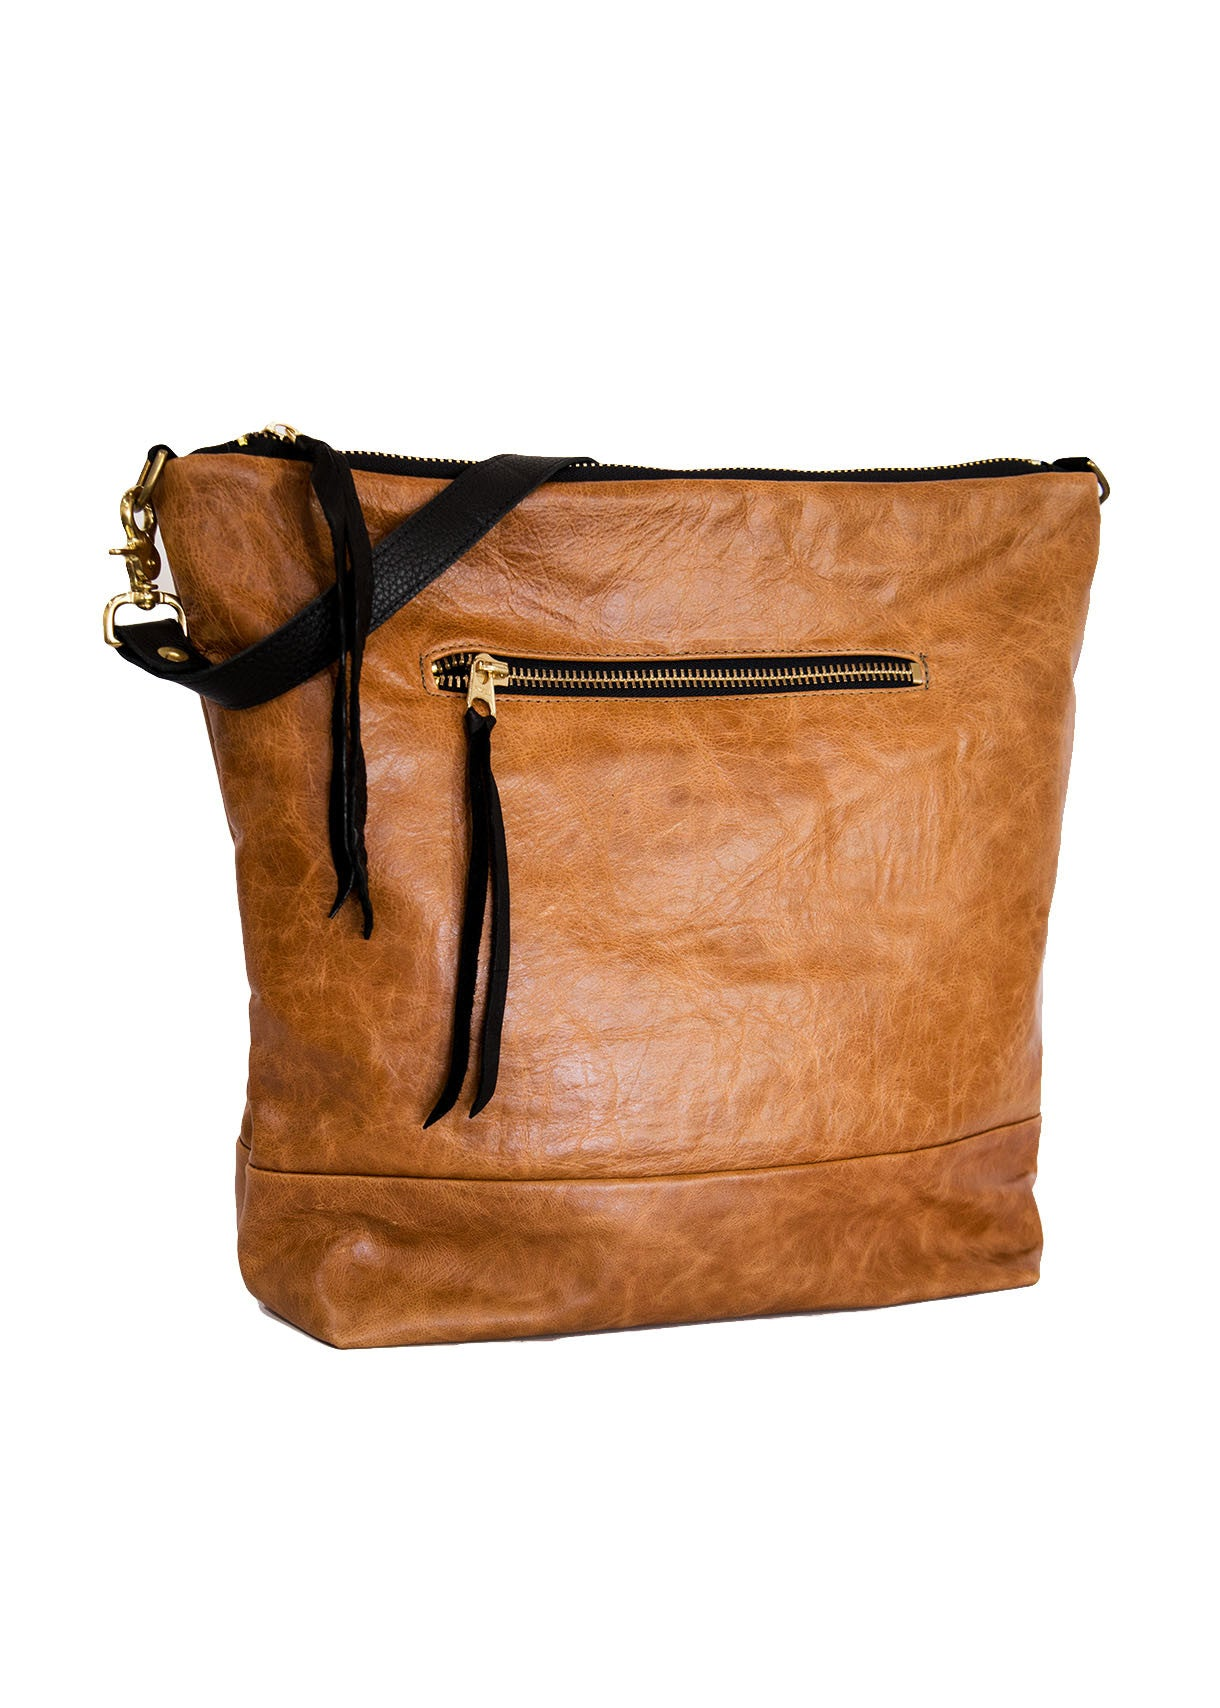 Ellis Tote in Honey Leather